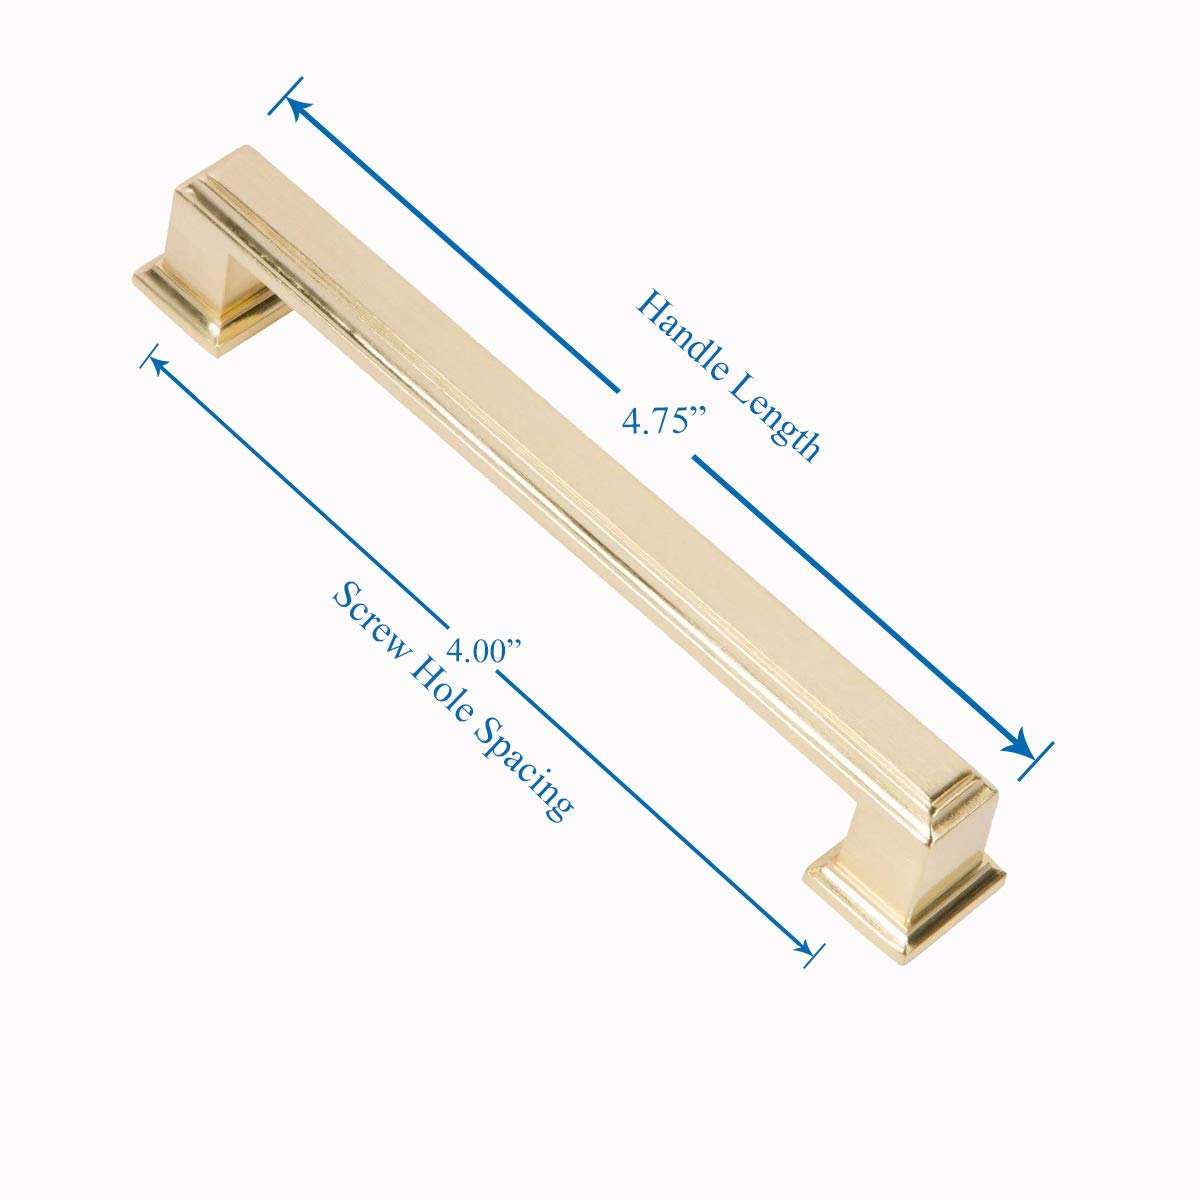 Southern Hills Brushed Brass Cabinet Handles- 5 Pack 4.75 Inches Total Length 4 Inch Screw Spacing Modern Cabinet Hardware YJ0660-101-BRS-5 Satin Brass Drawer Pulls